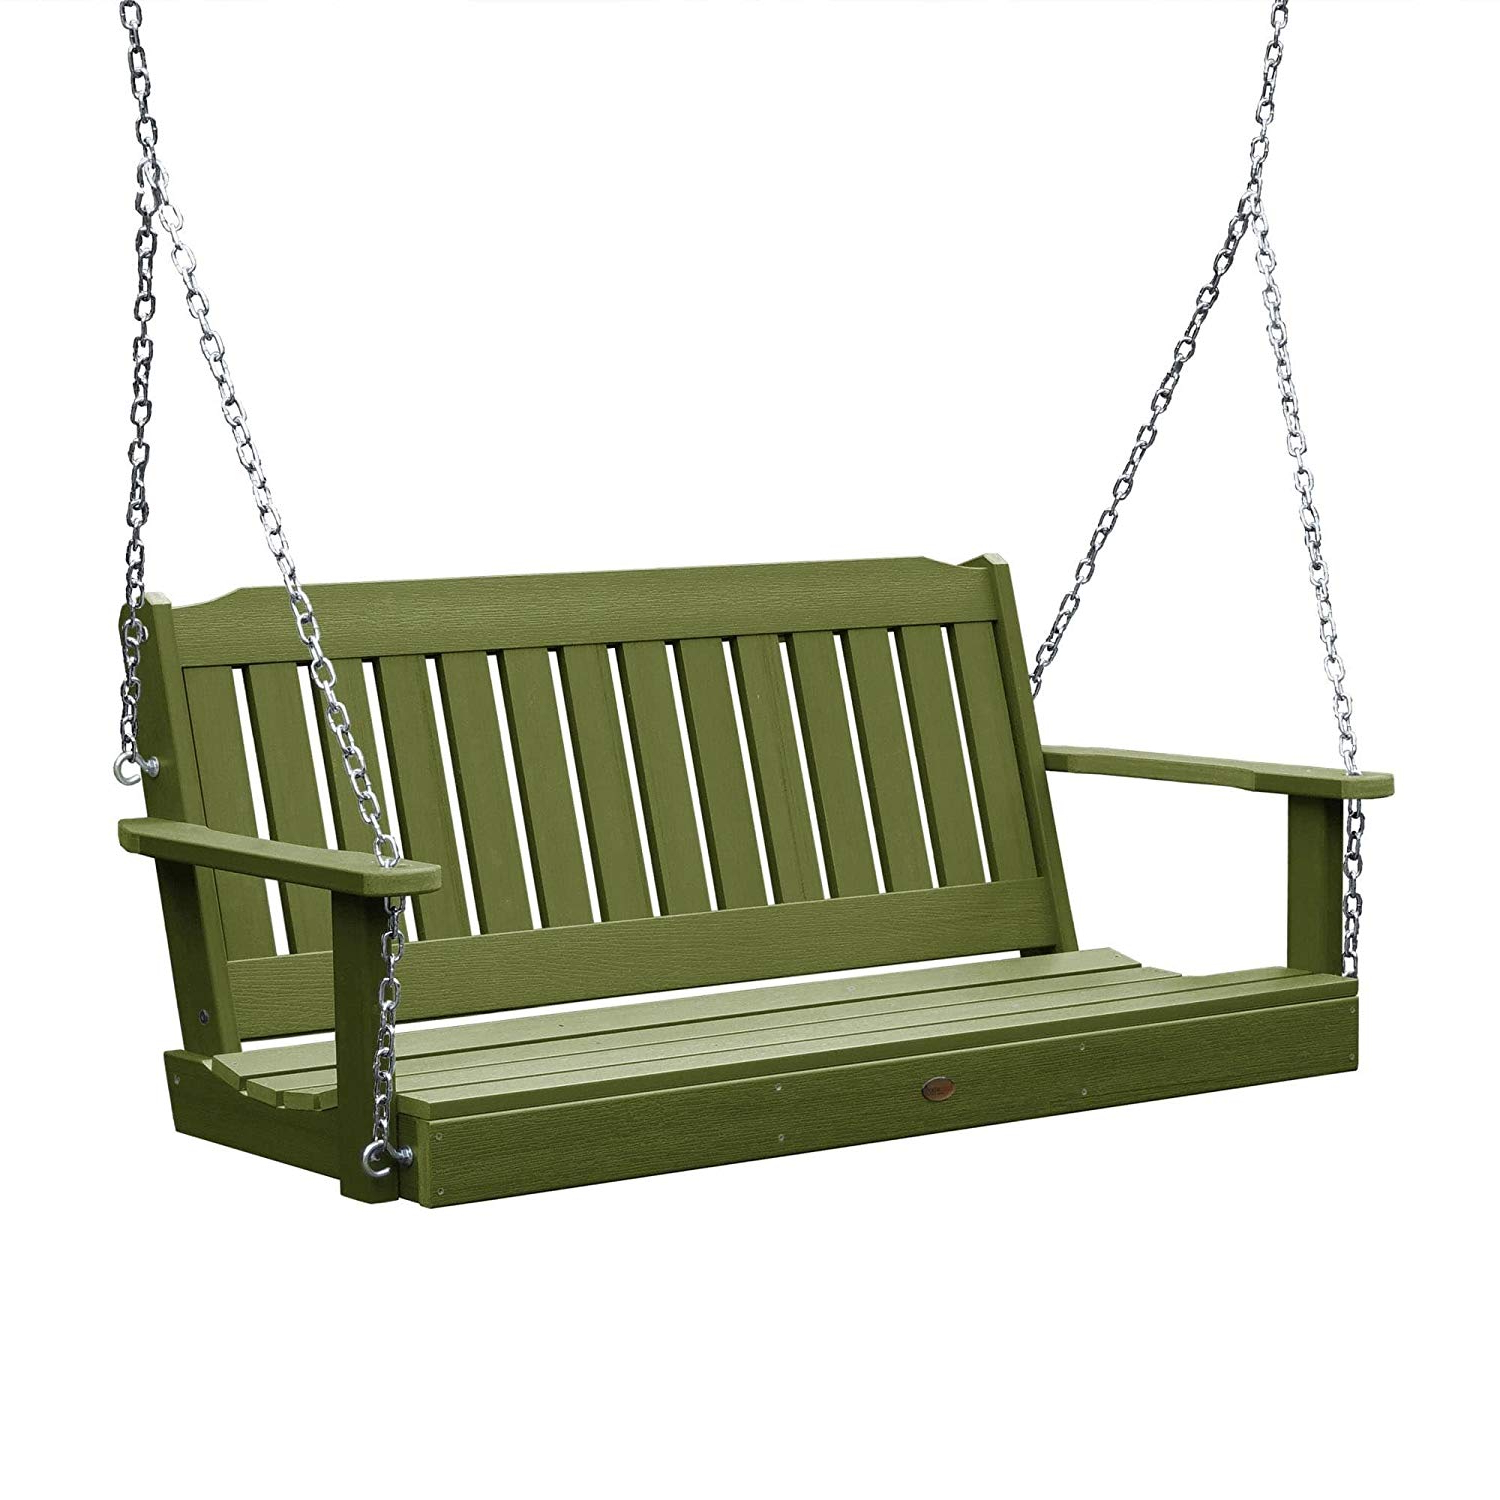 Cheap Porch Swing Chain, Find Porch Swing Chain Deals On In 2020 Porch Swings With Chain (View 19 of 30)